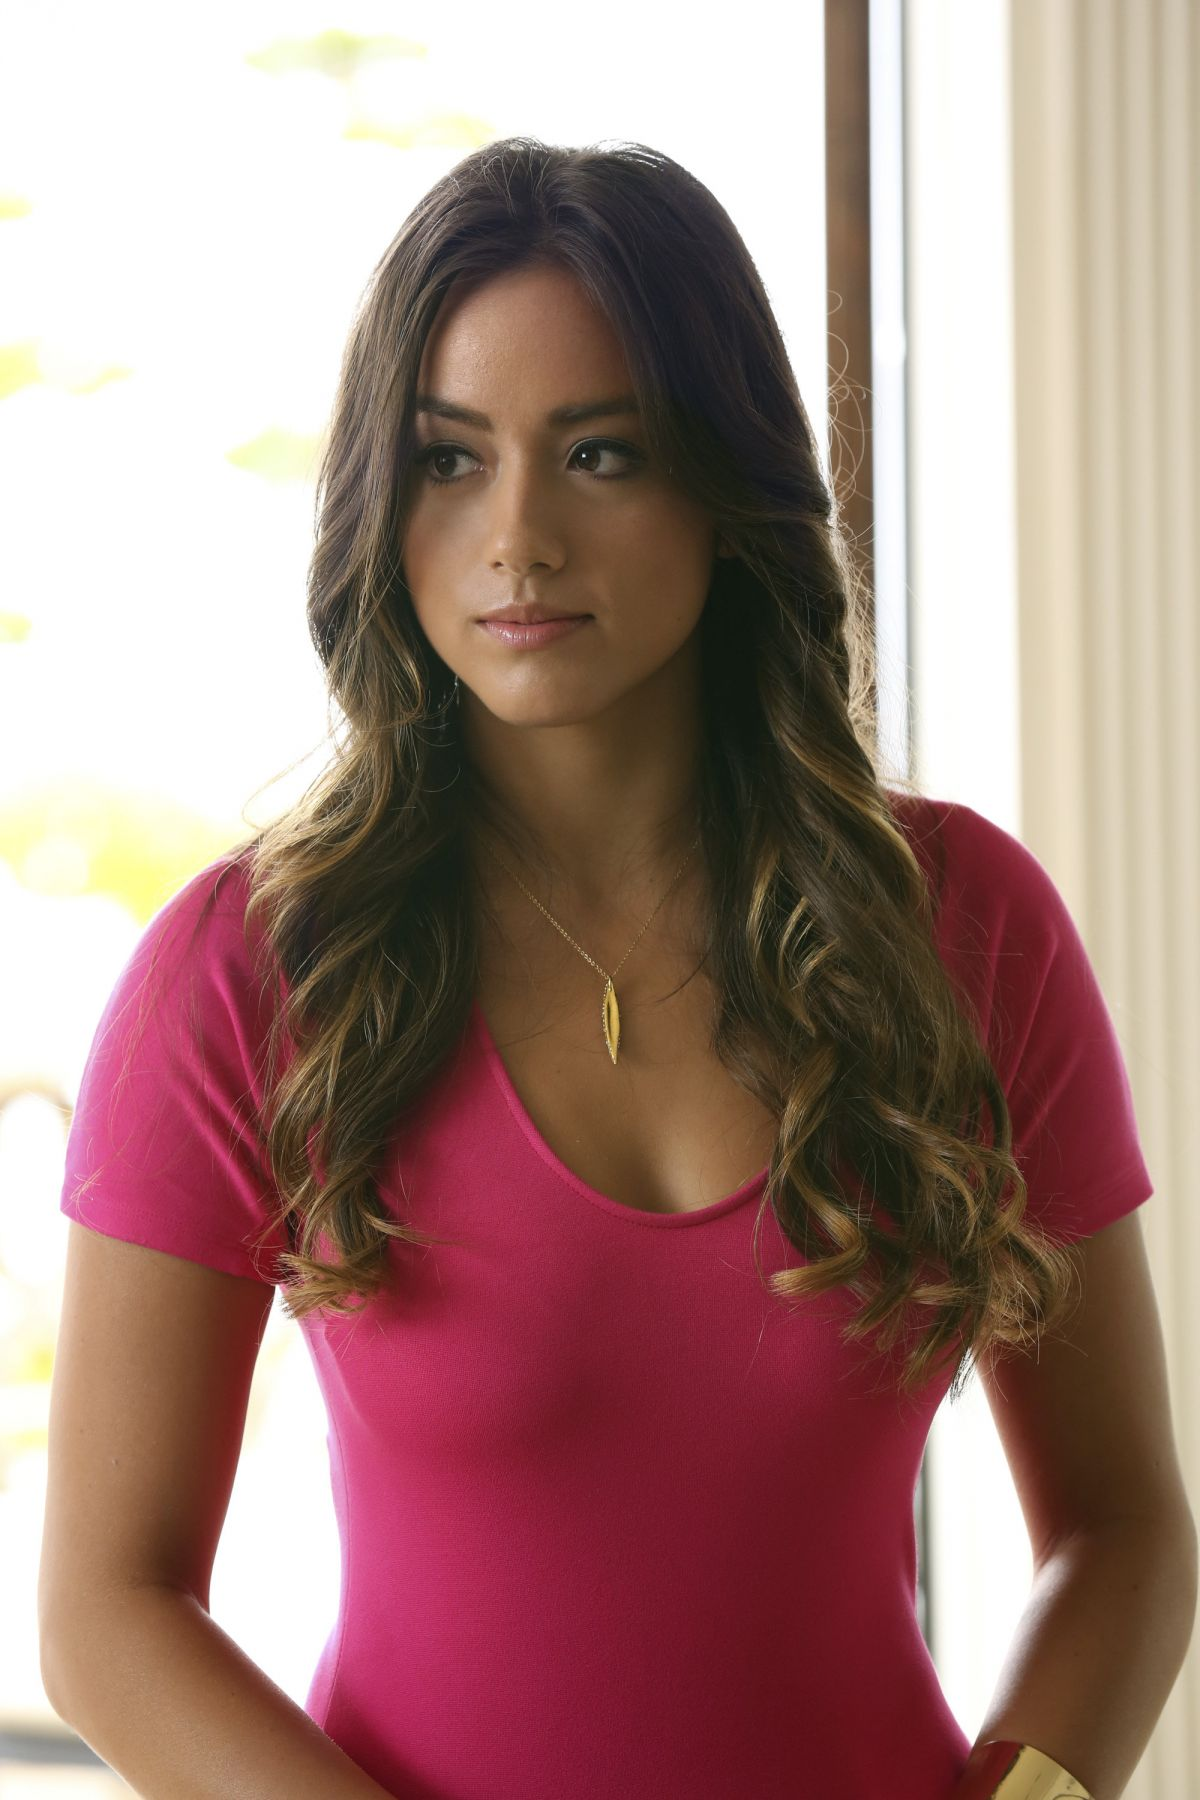 http://img4.wikia.nocookie.net/__cb20140130231106/mujeres/es/images/a/a6/Chloe-bennet-at-marvel-s-agents-of-s.h.i.e.l.d._1.jpg